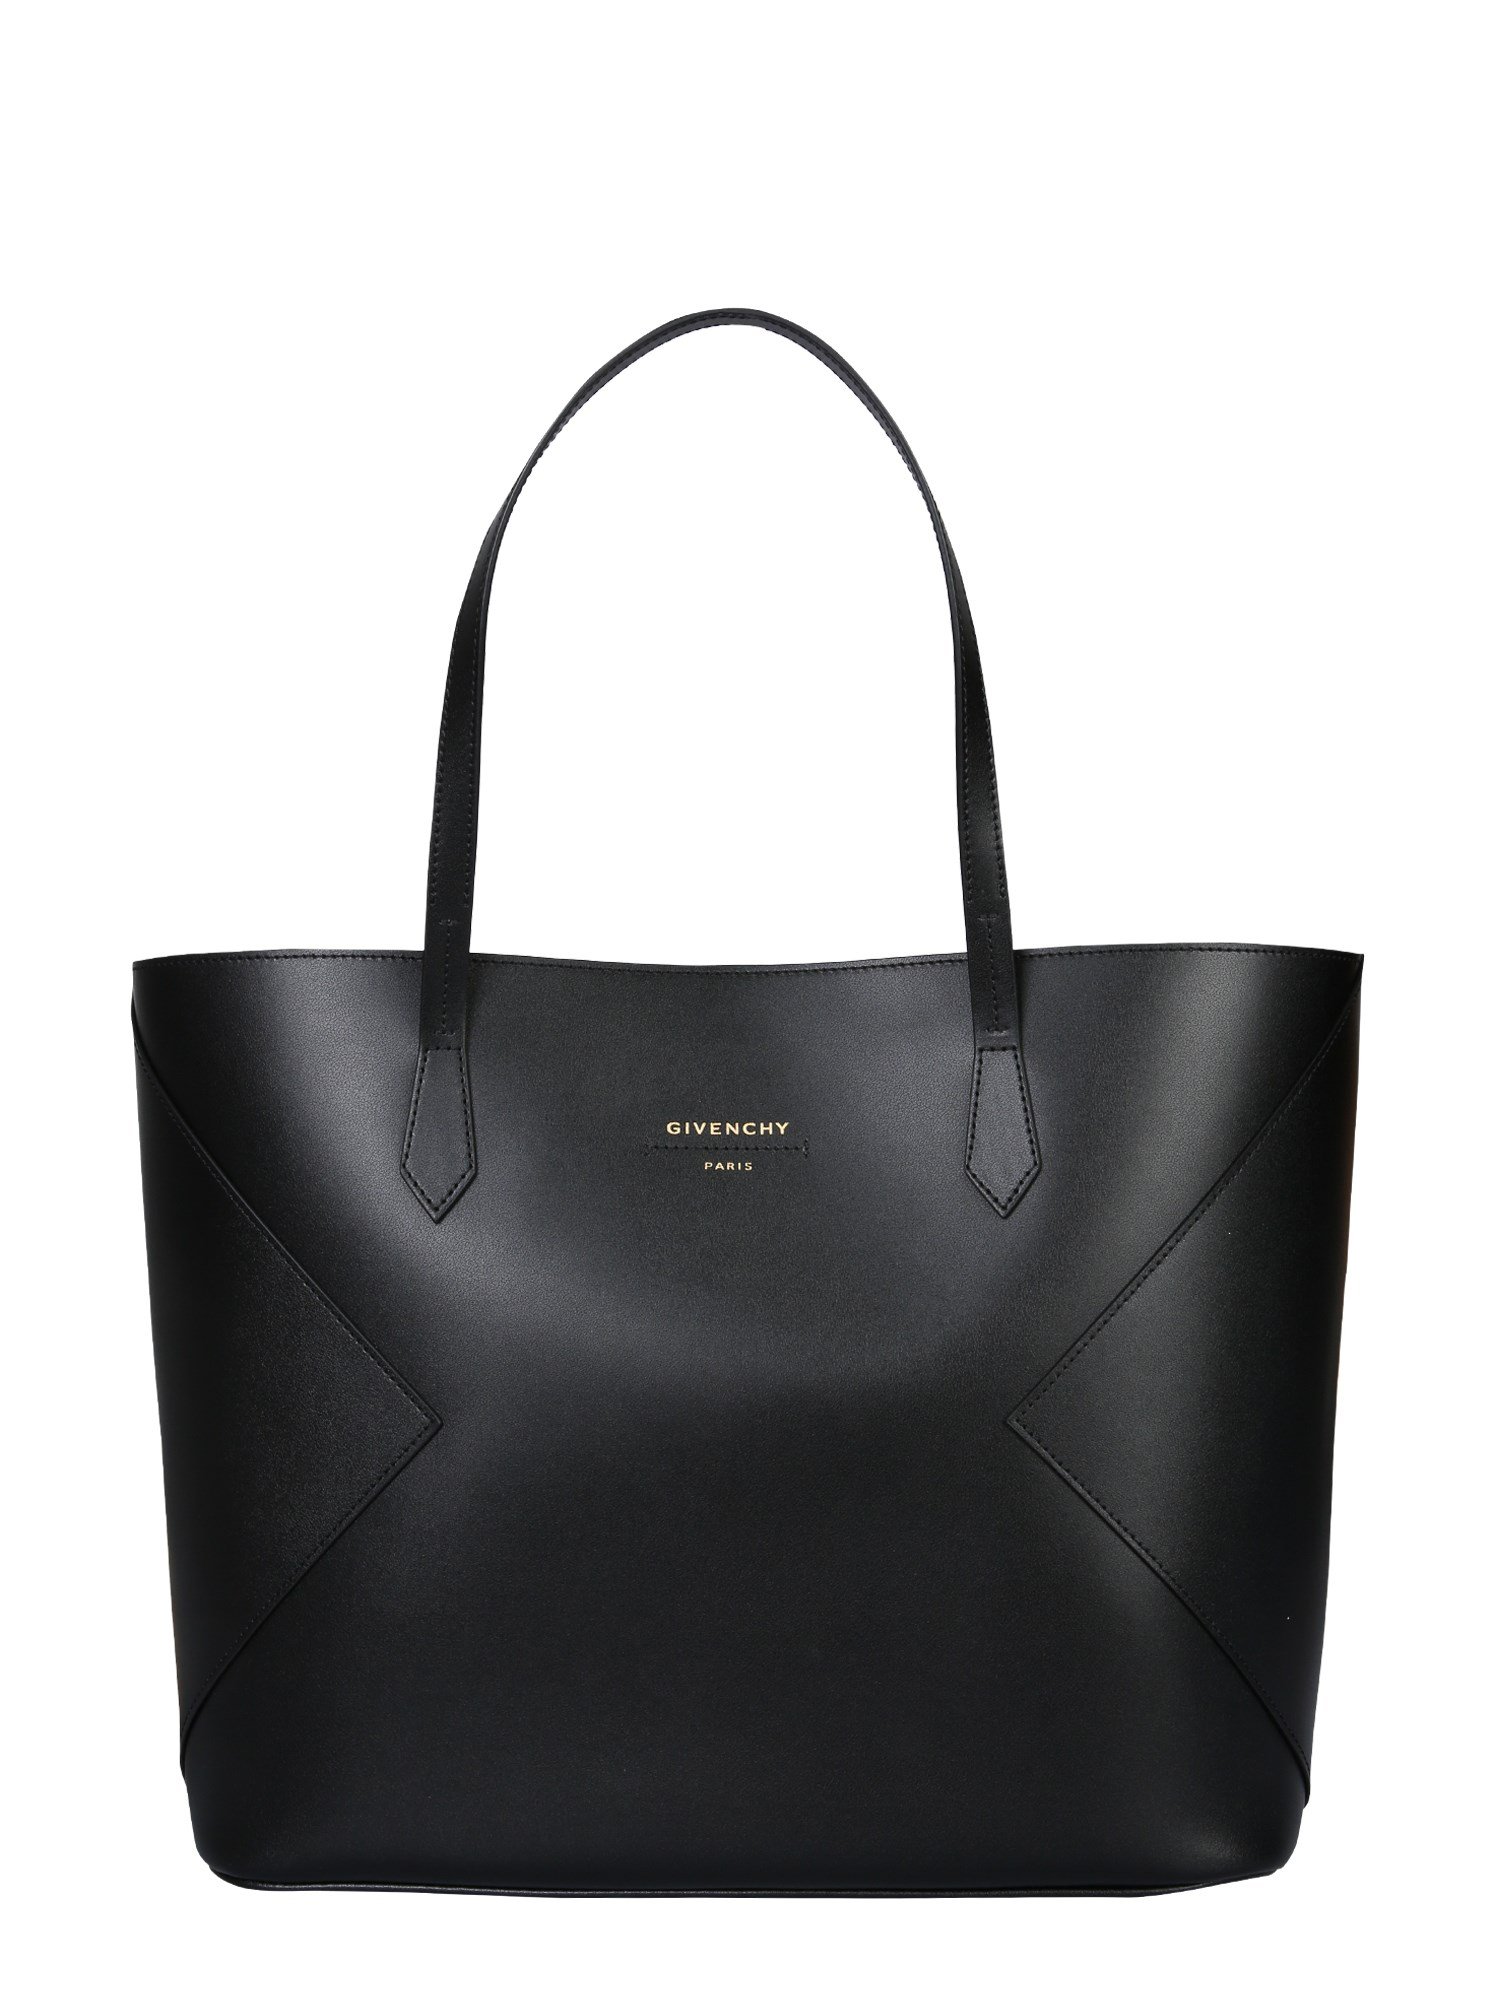 Givenchy TOTE WING BAG